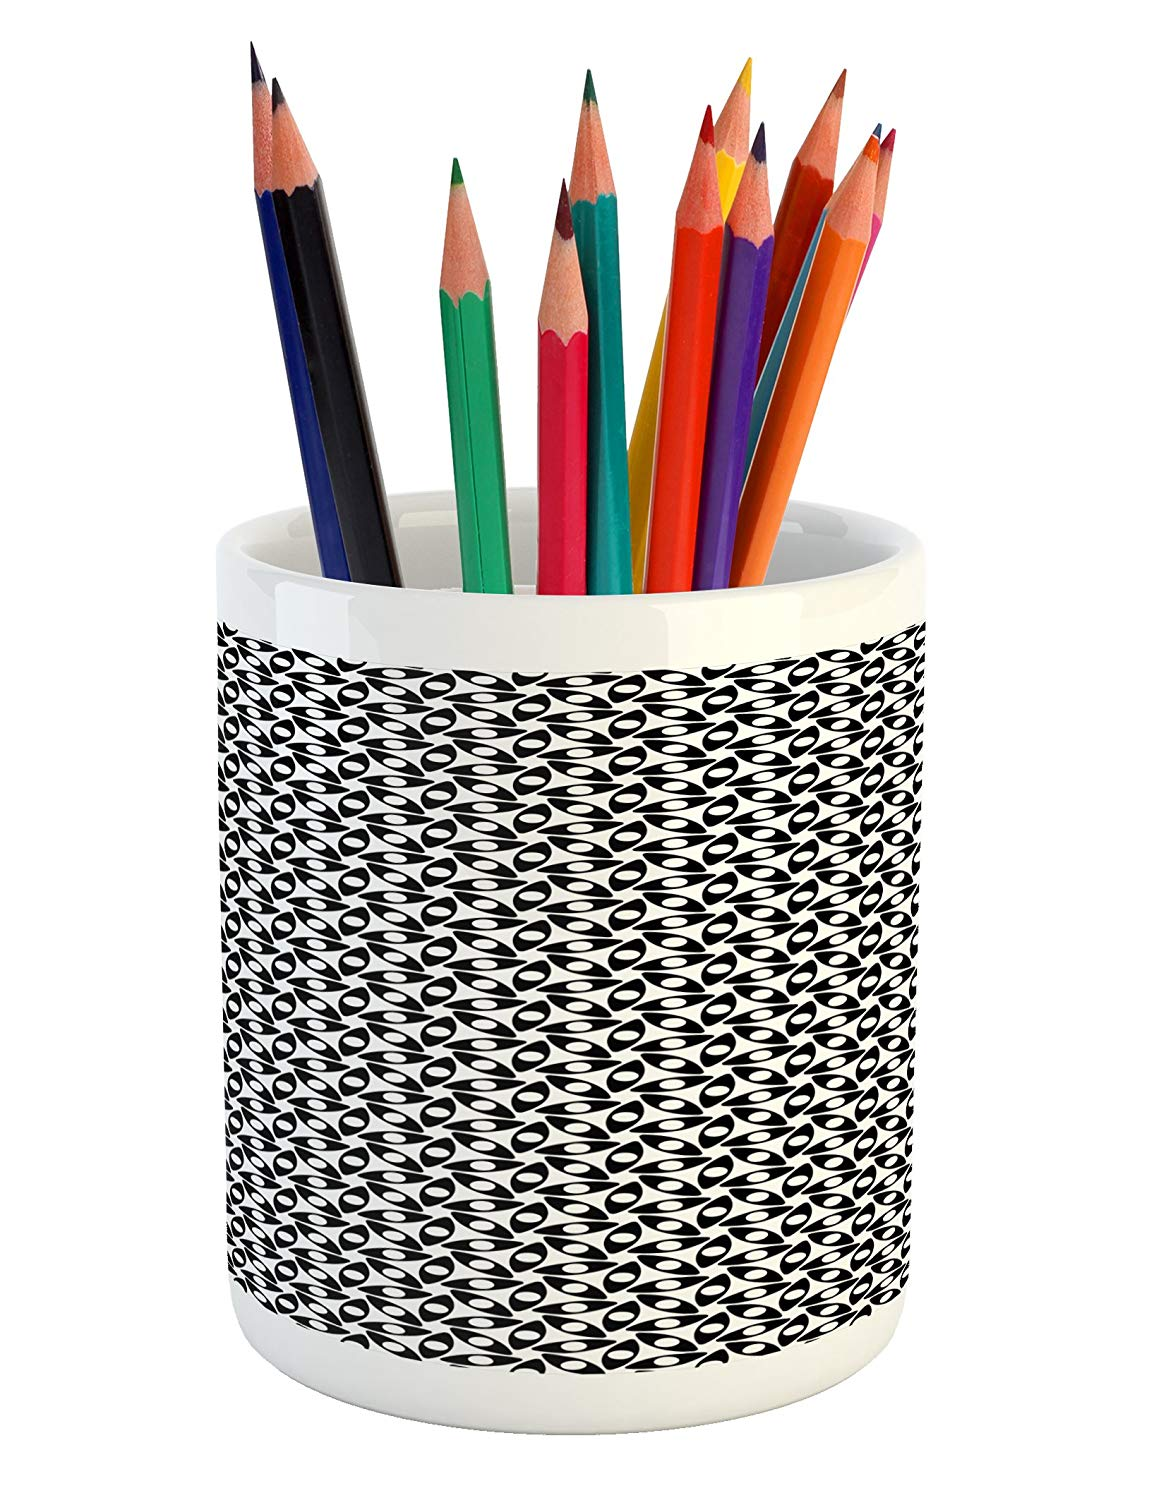 Lunarable Black and White Pencil Pen Holder, Monochrome Petals with Dots Floral Arrangement Blooming Summer Growth, Printed Ceramic Pencil Pen Holder for Desk Office Accessory, Black and White